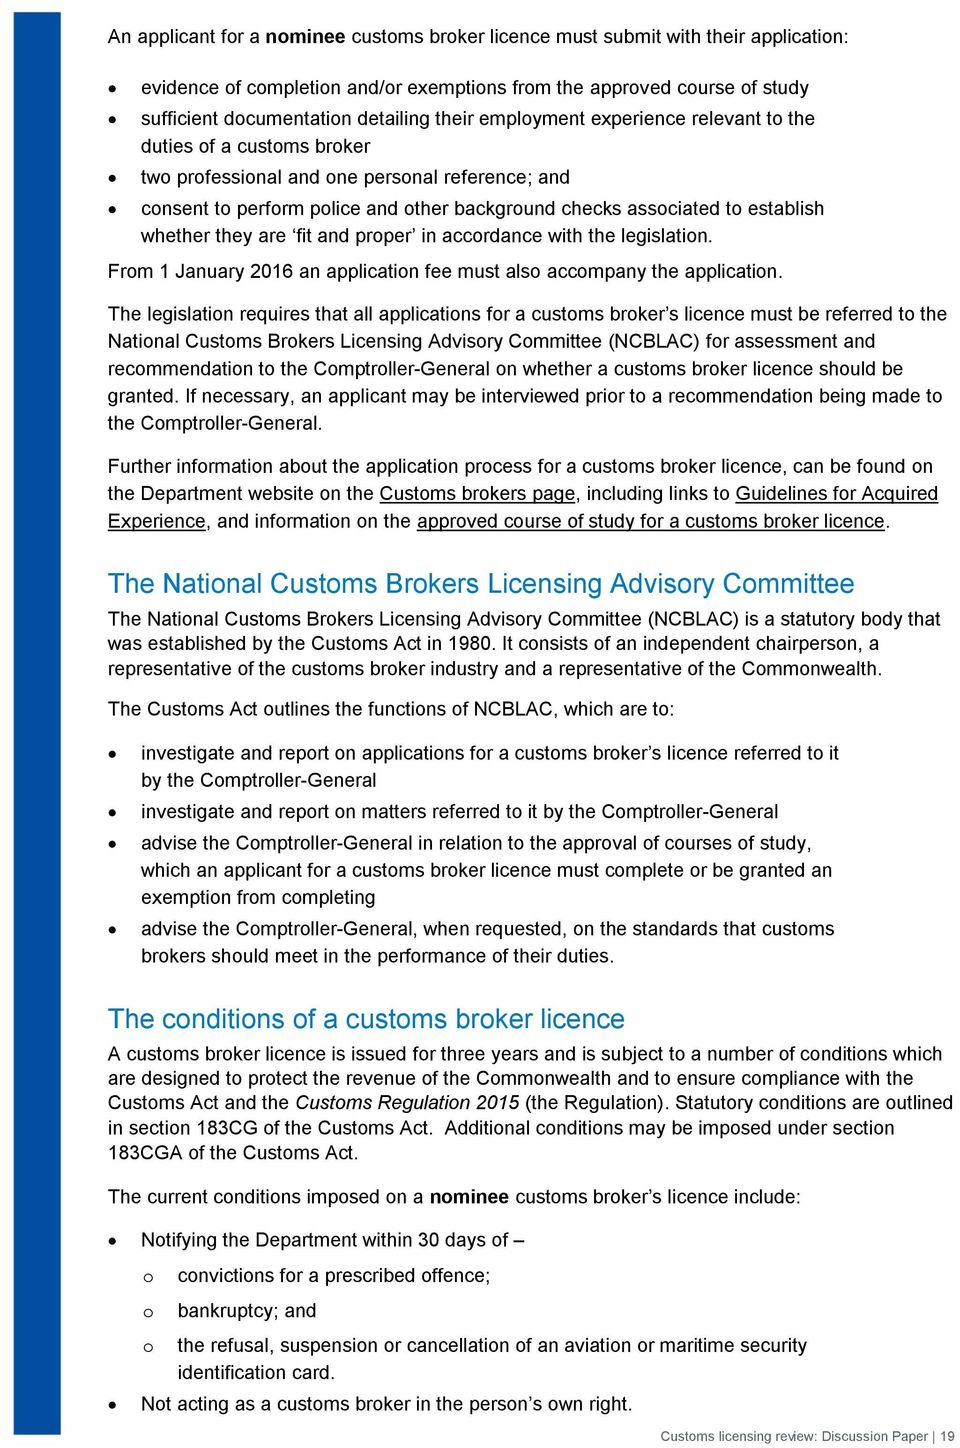 Review of customs licensing regimes - PDF